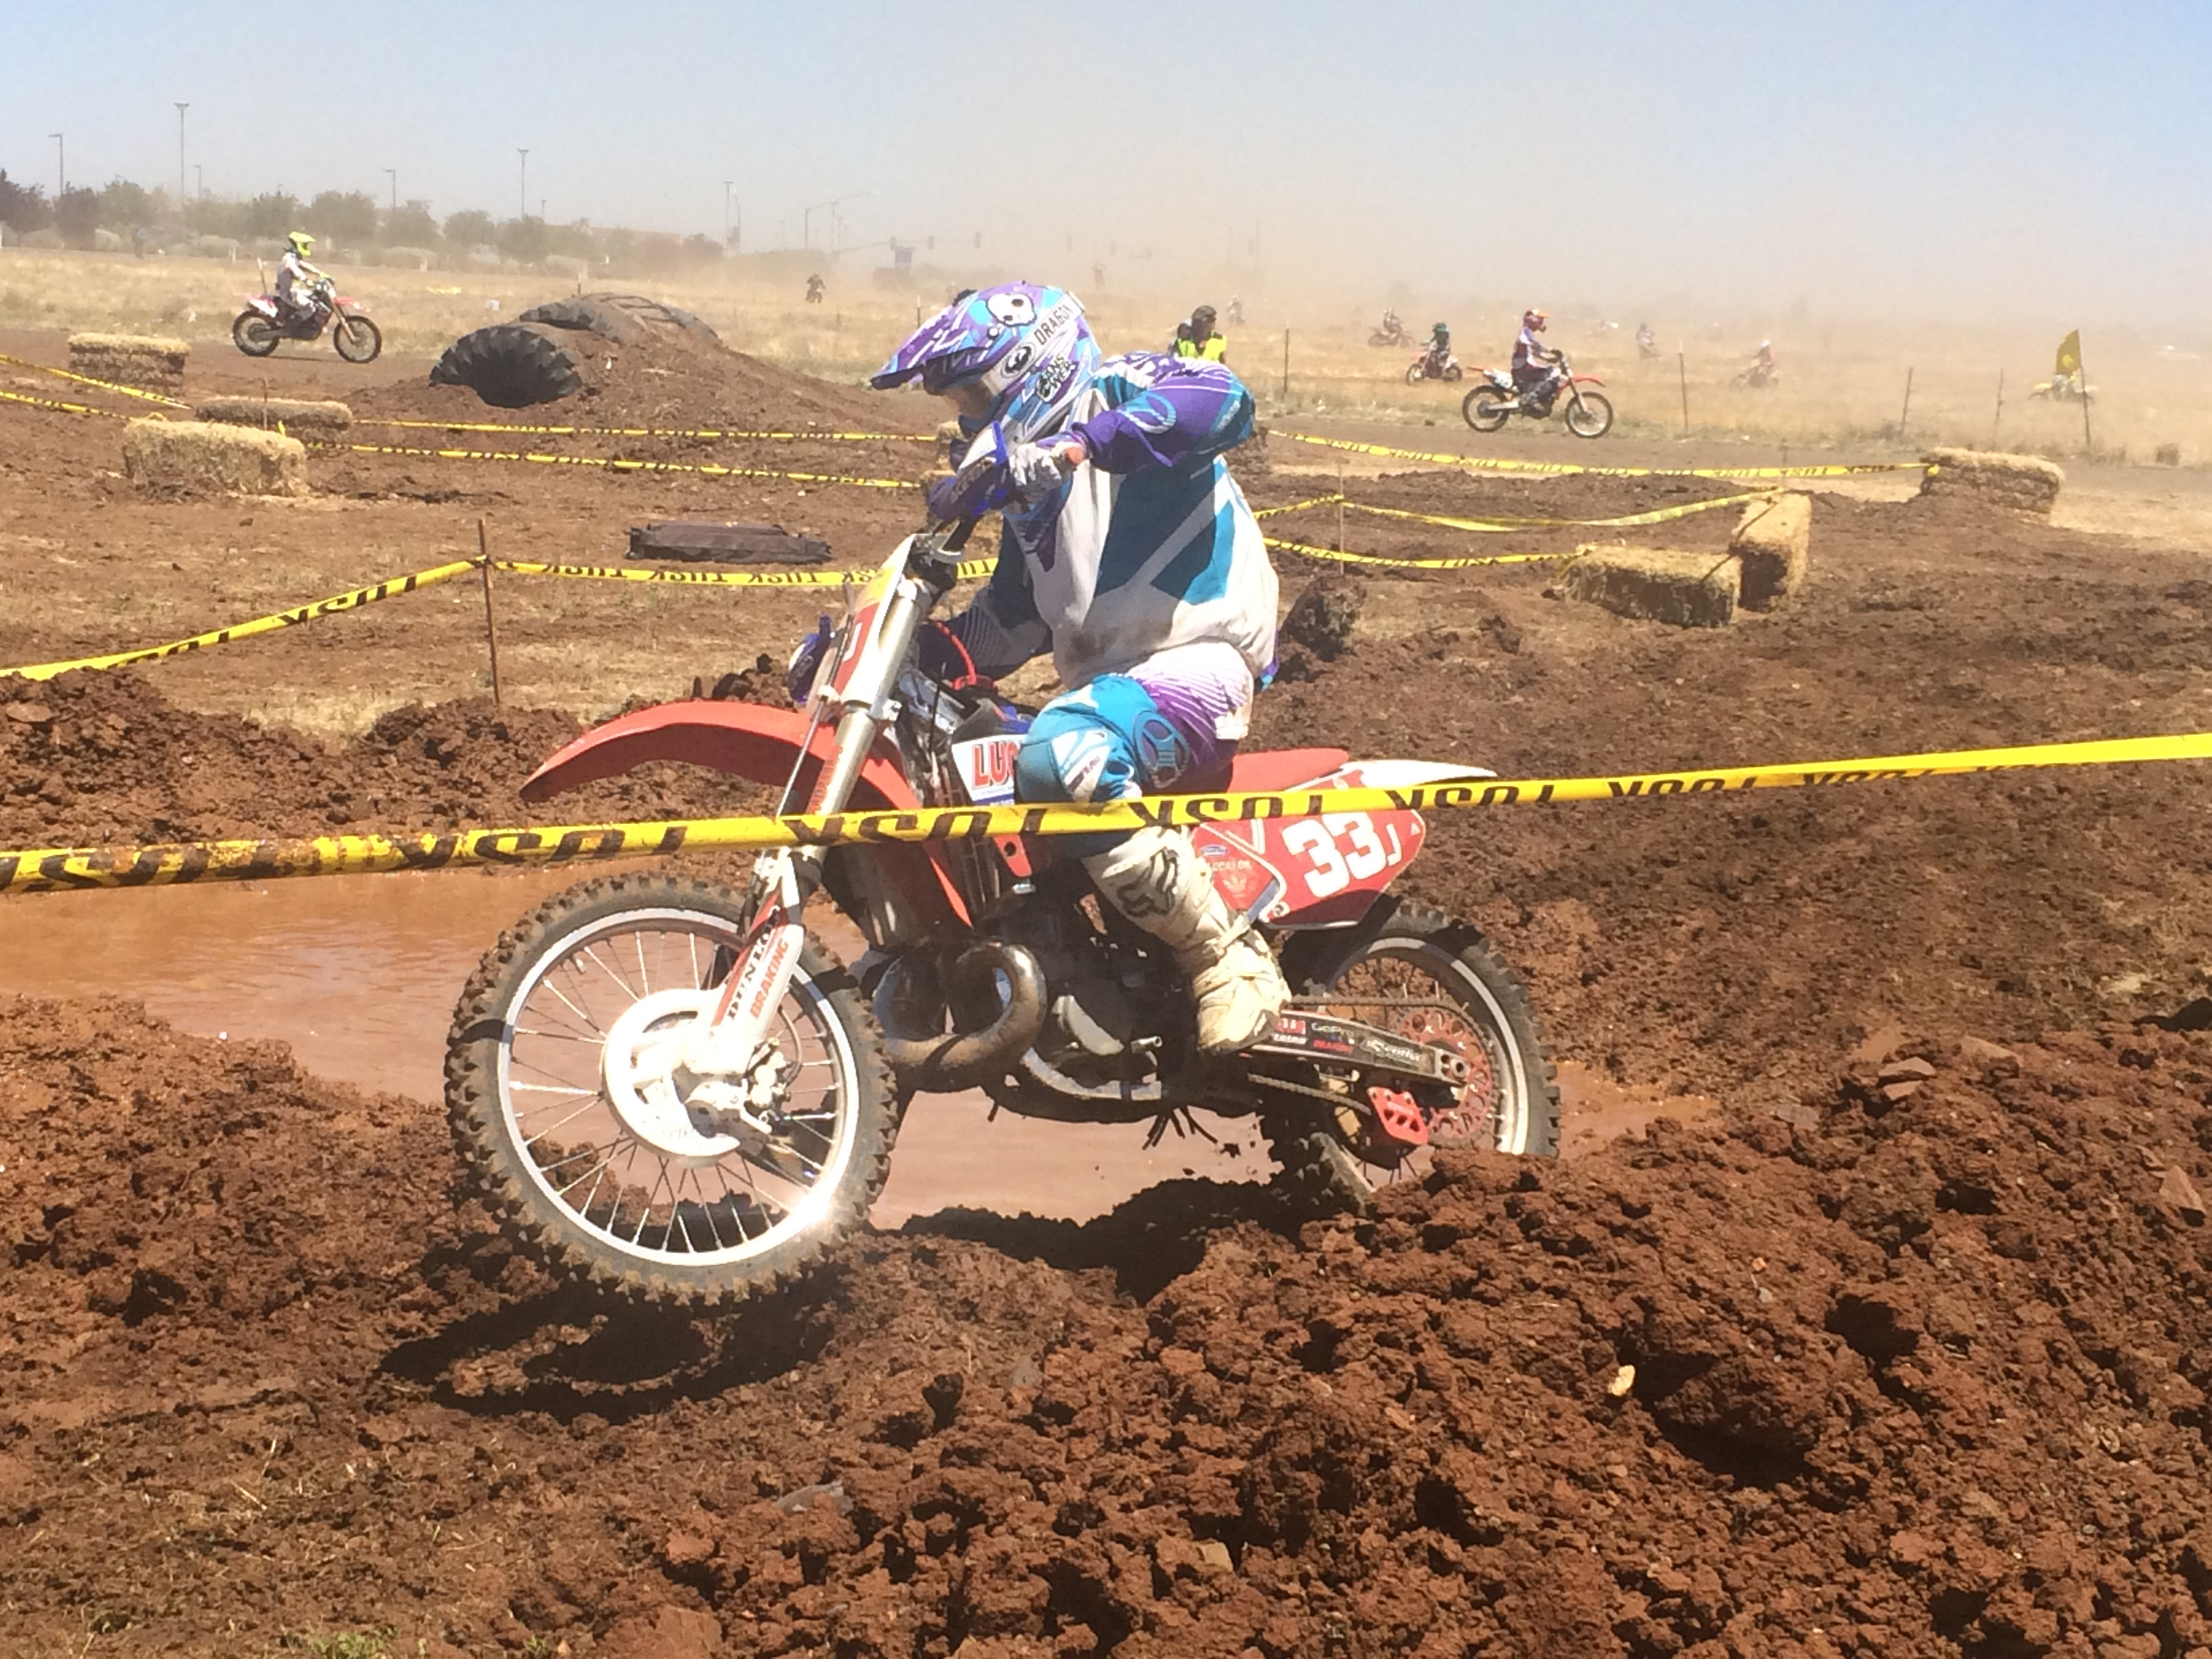 Prescott Valley Grand Prix races this weekend